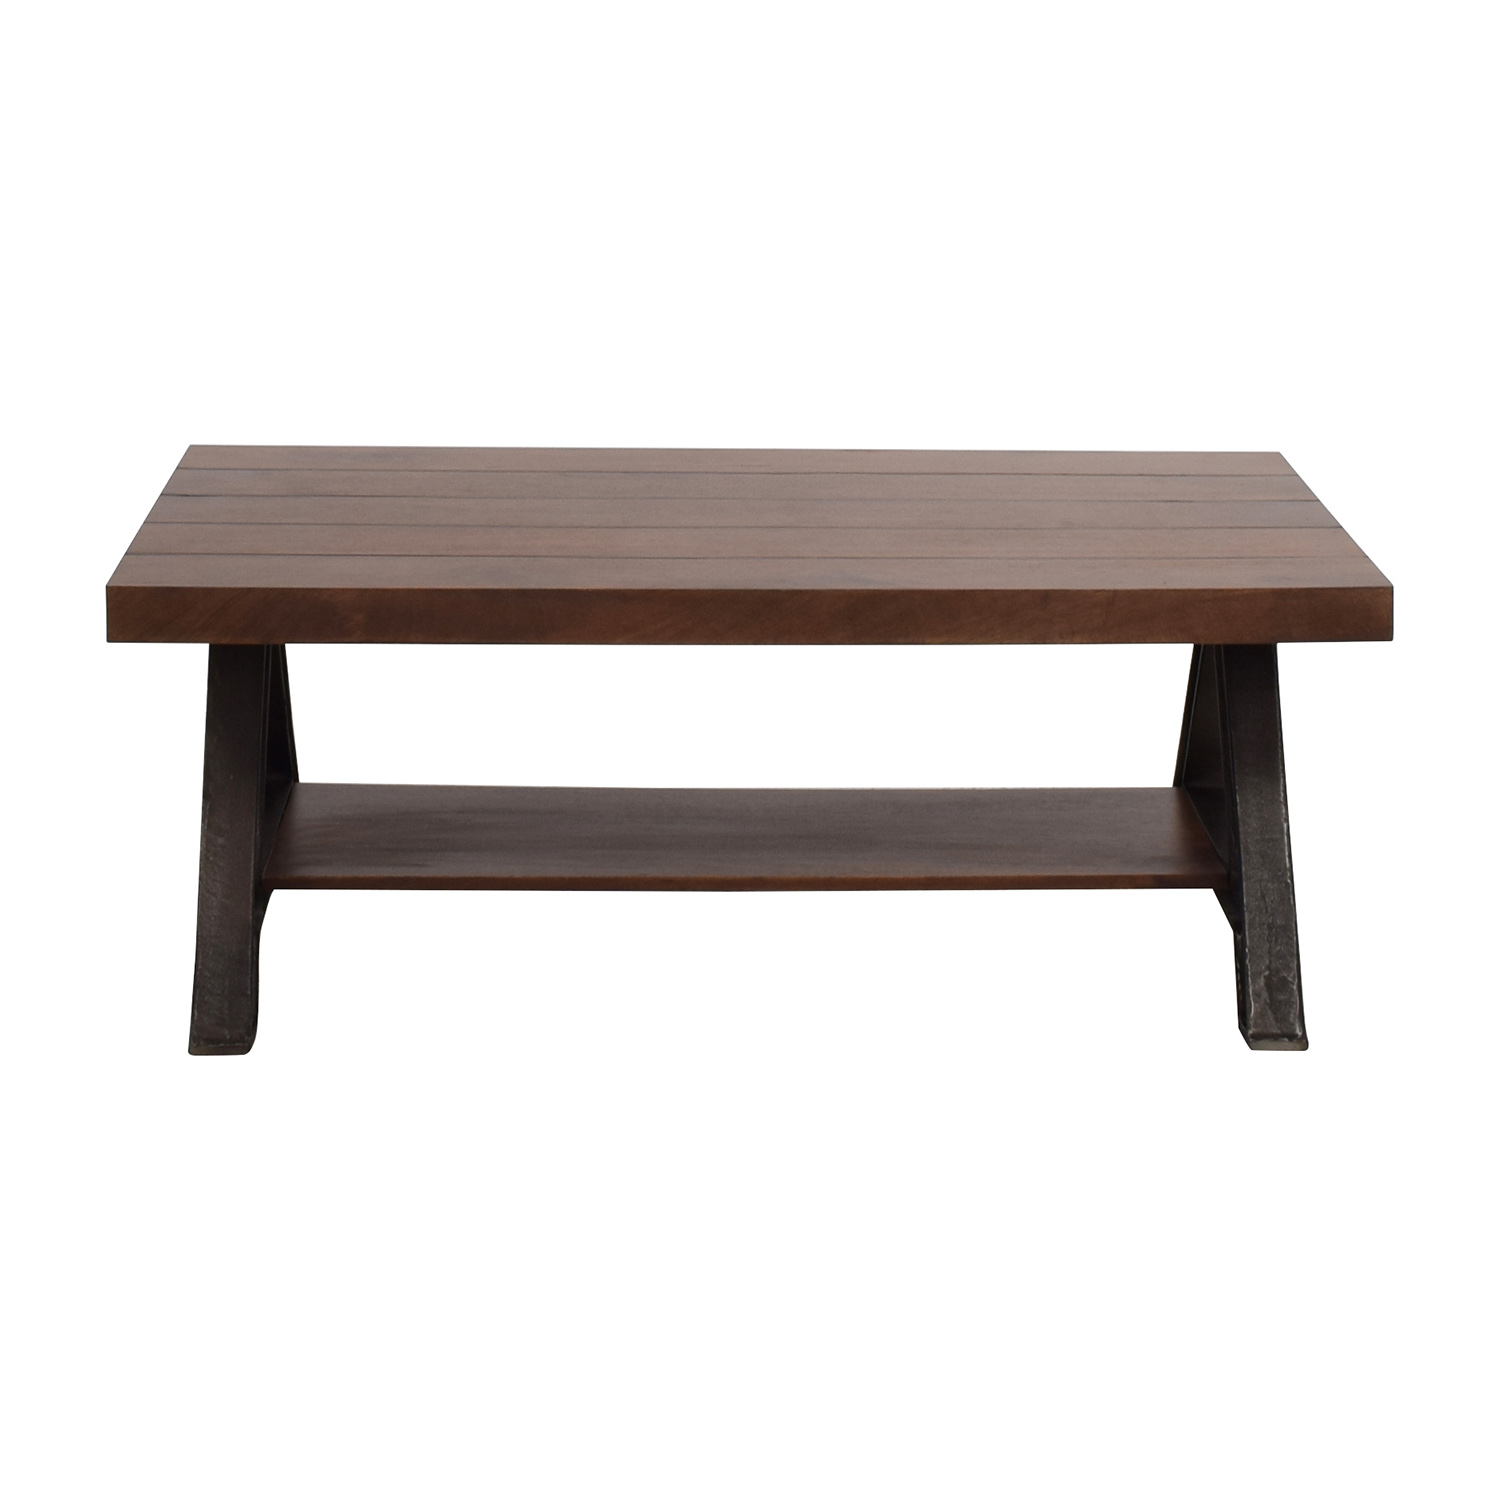 West Elm West Elm Wood and Metal Coffee Table used